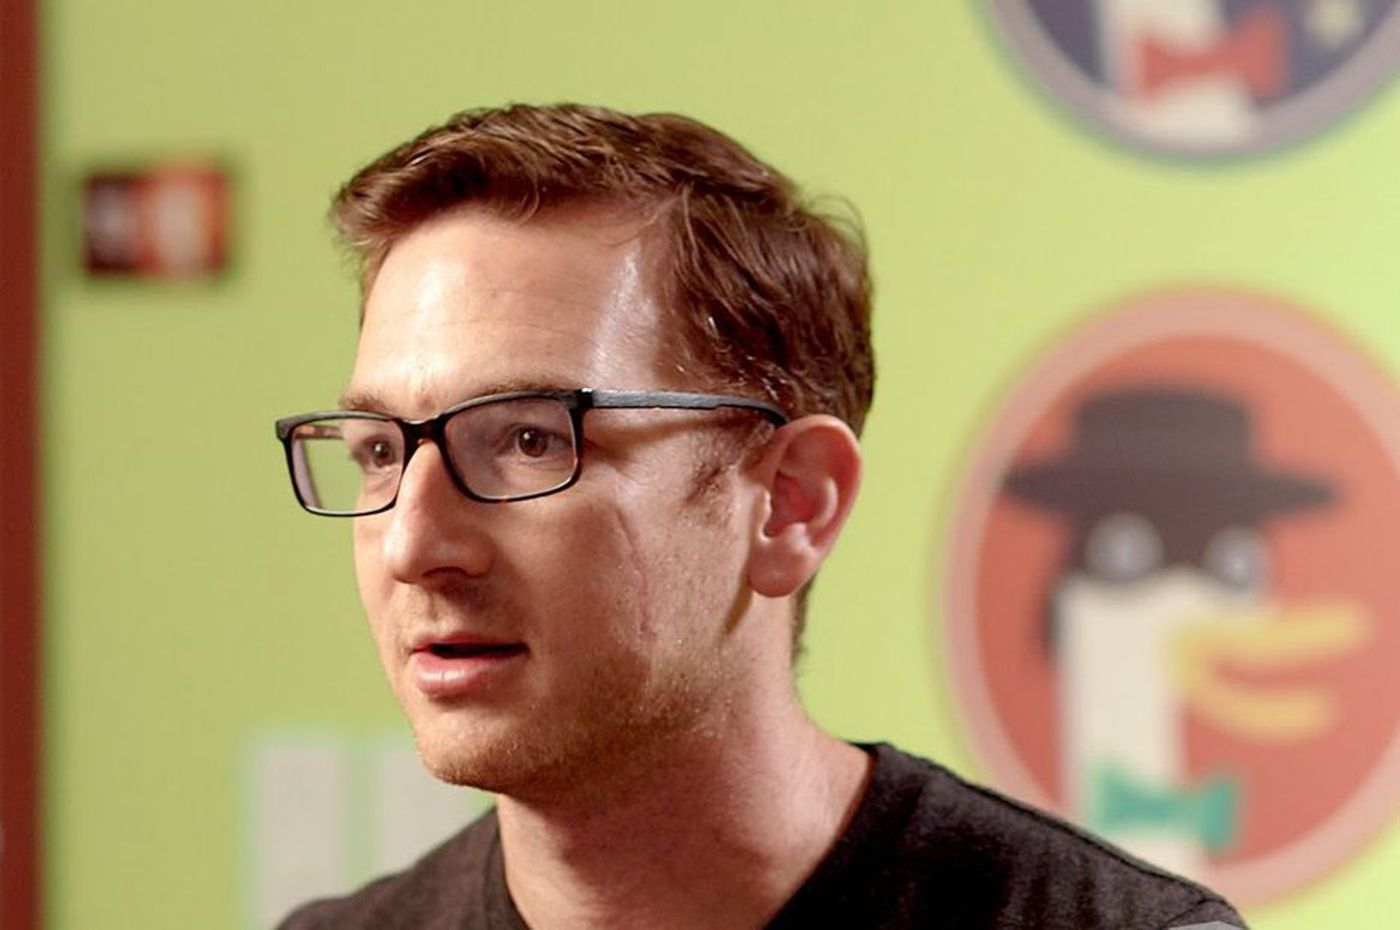 DuckDuckGo's Gabriel Weinberg: How Internet giants grab content, trample privacy